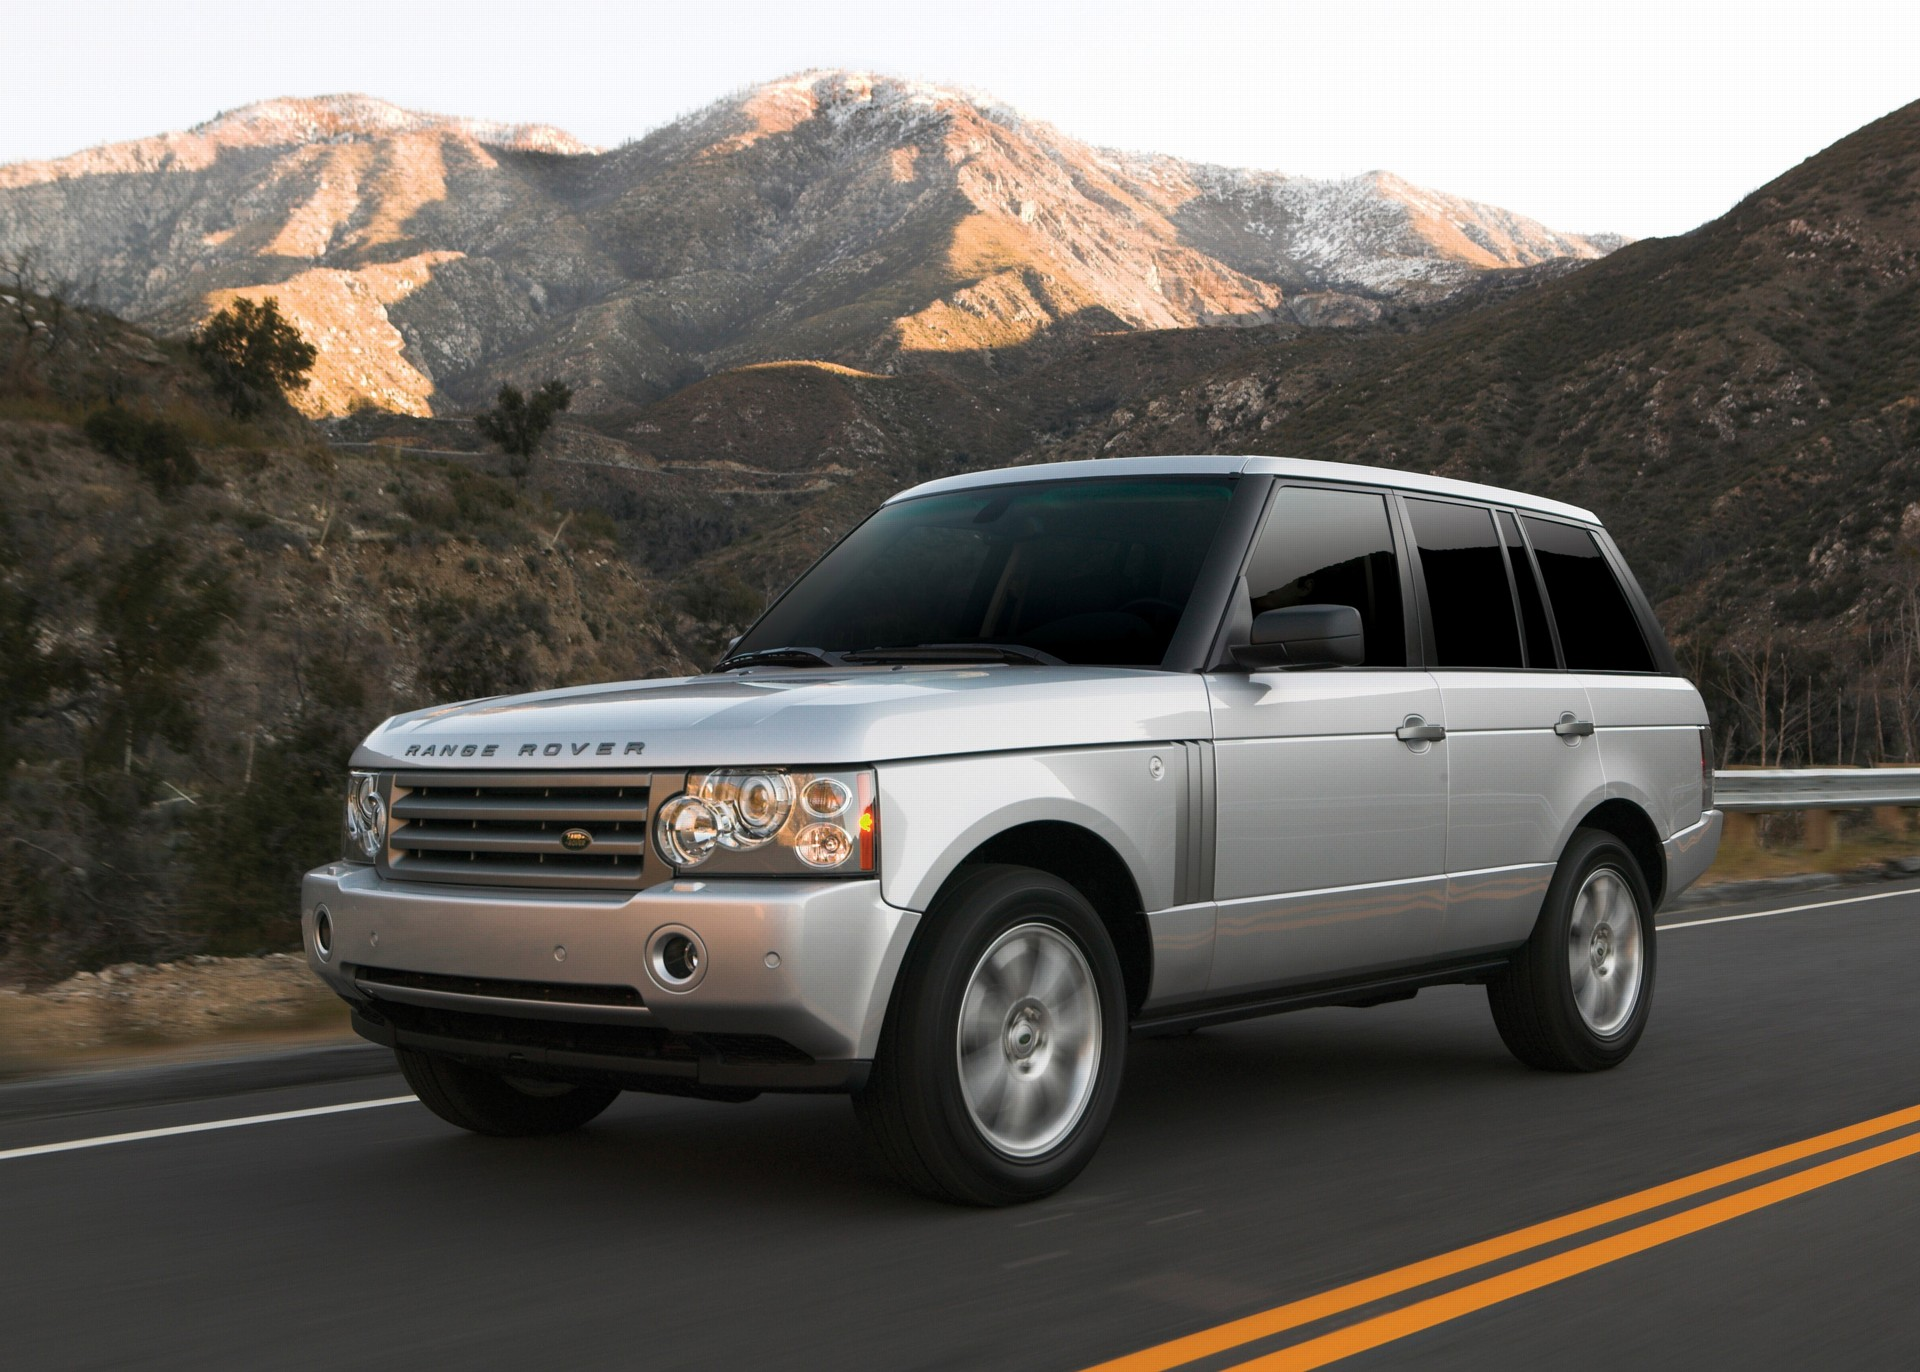 2007 Land Rover Range Rover History, Pictures, Value, Auction Sales,  Research and News